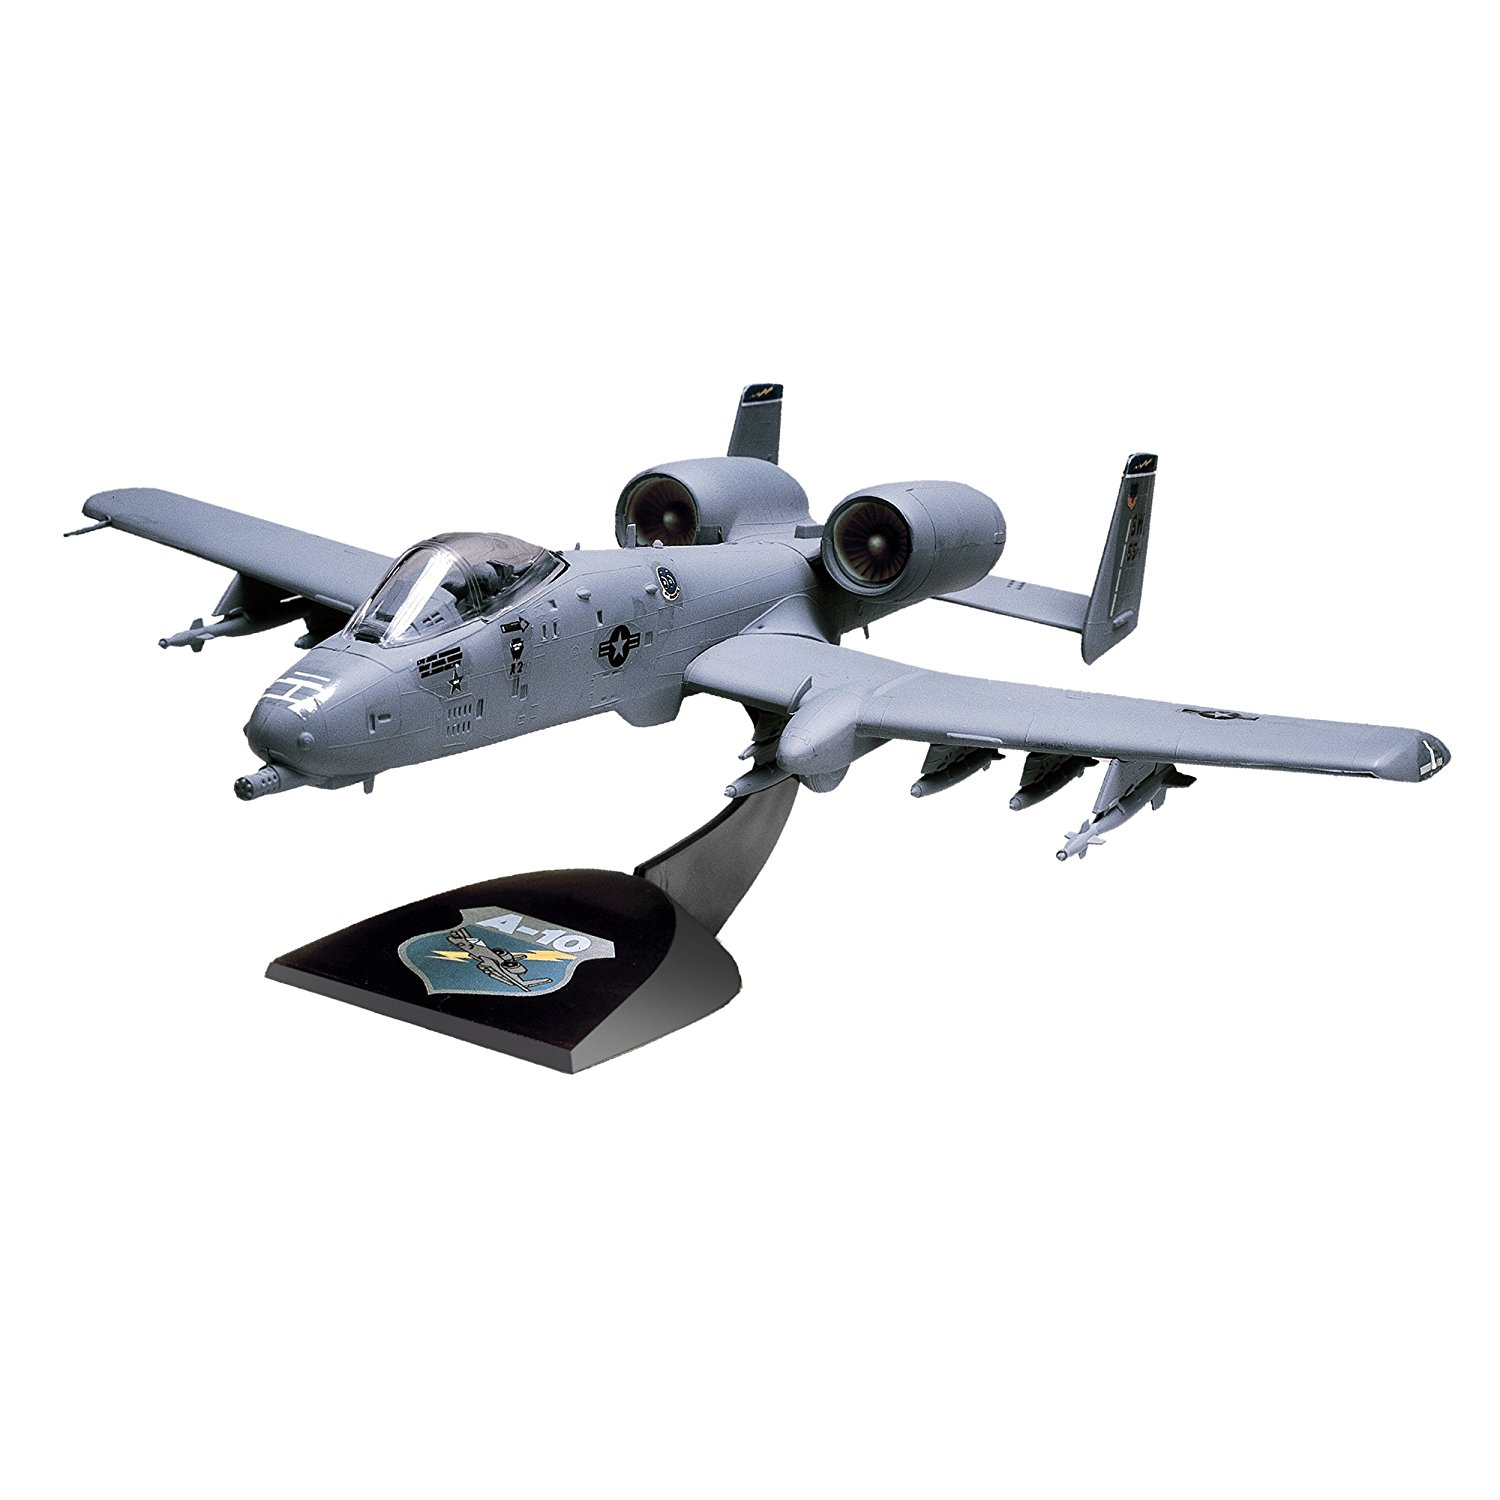 SnapTite A-10 Warthog Plastic Model KitModel Scale 1:72 By Revell by